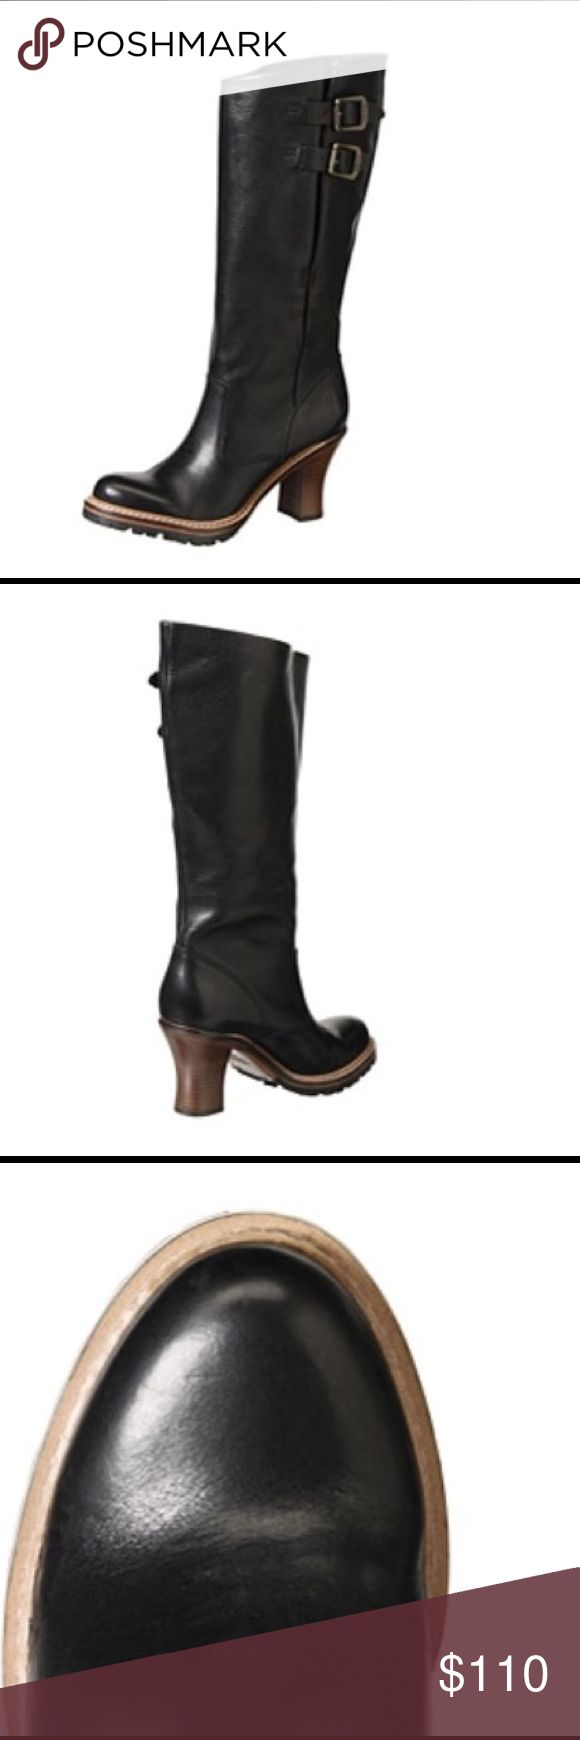 Frye pull on boots The Mildred Engineer pull on, still in stores. Only worn a few times, EUC. Frye Shoes Heeled Boots